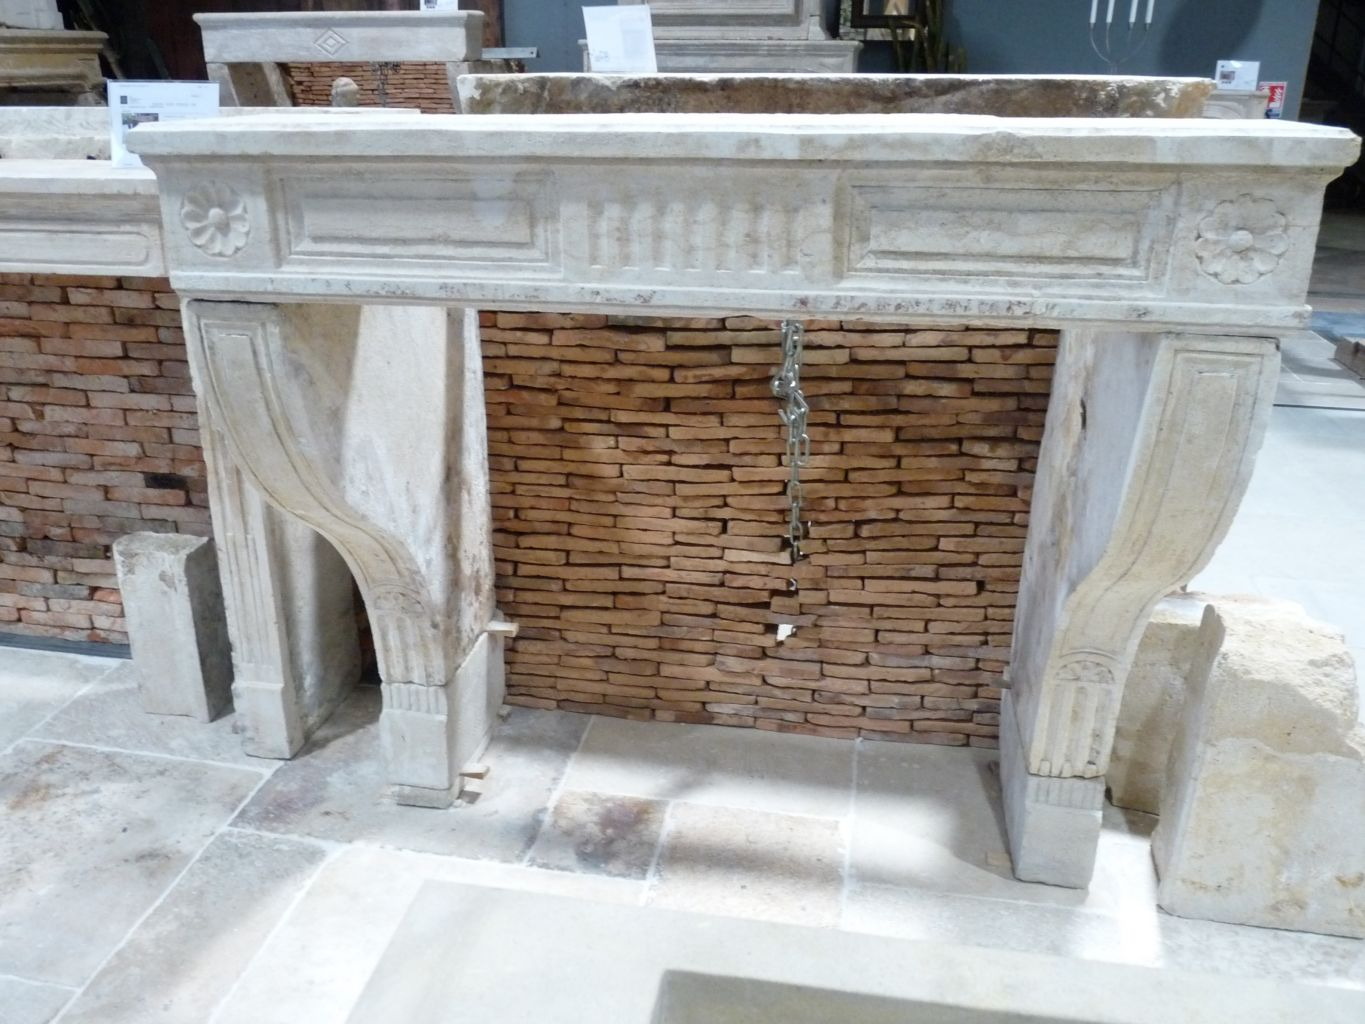 Antique Louis Xiv Fireplace In French Limestone 17th Century